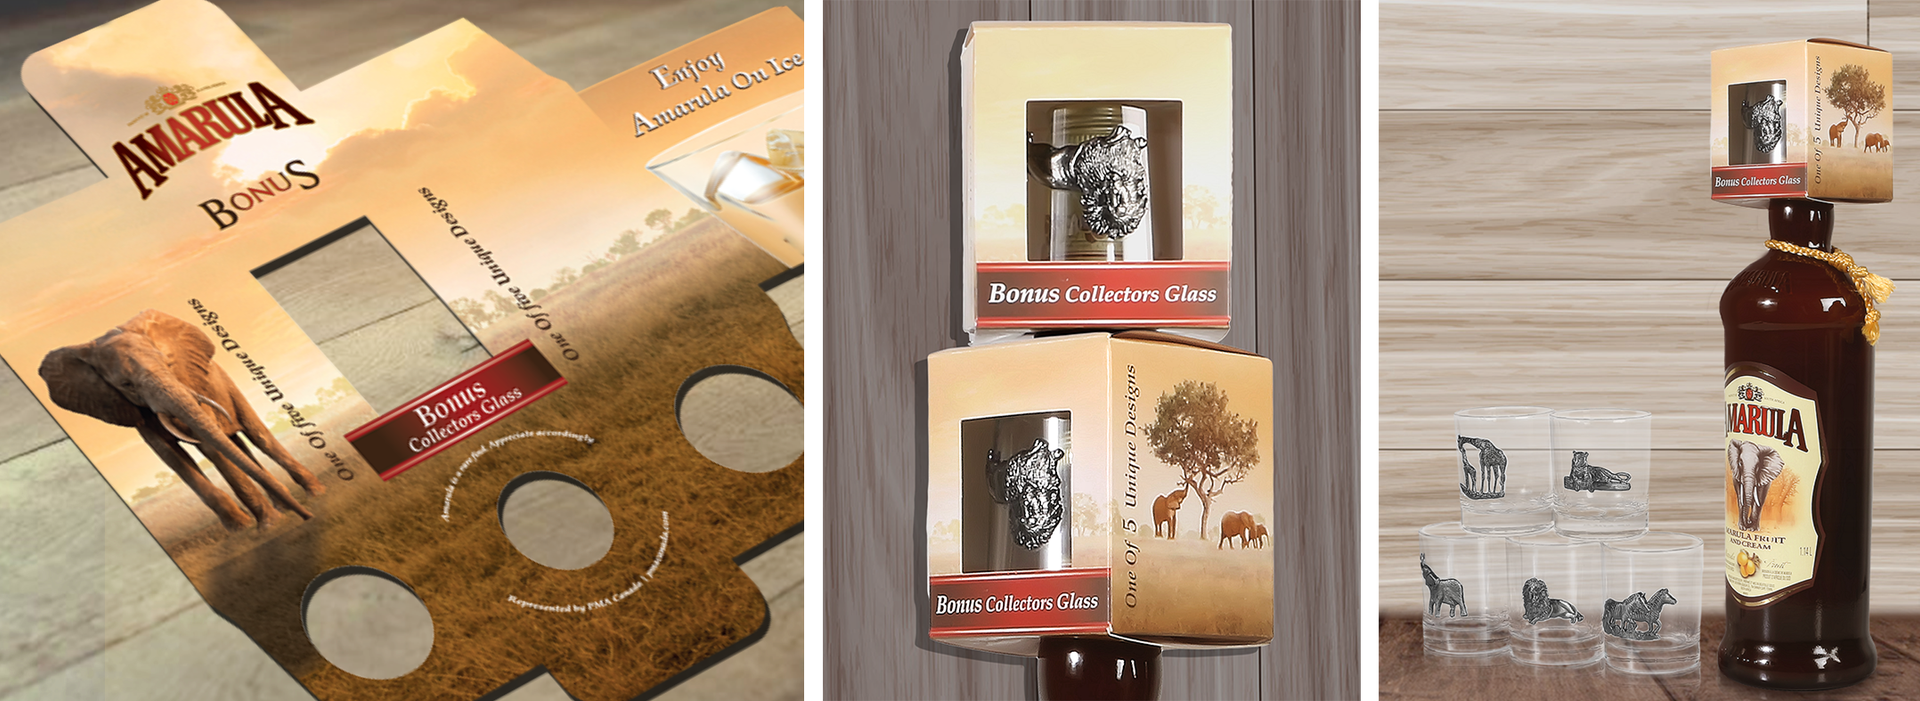 Amarula collectable glass packaging